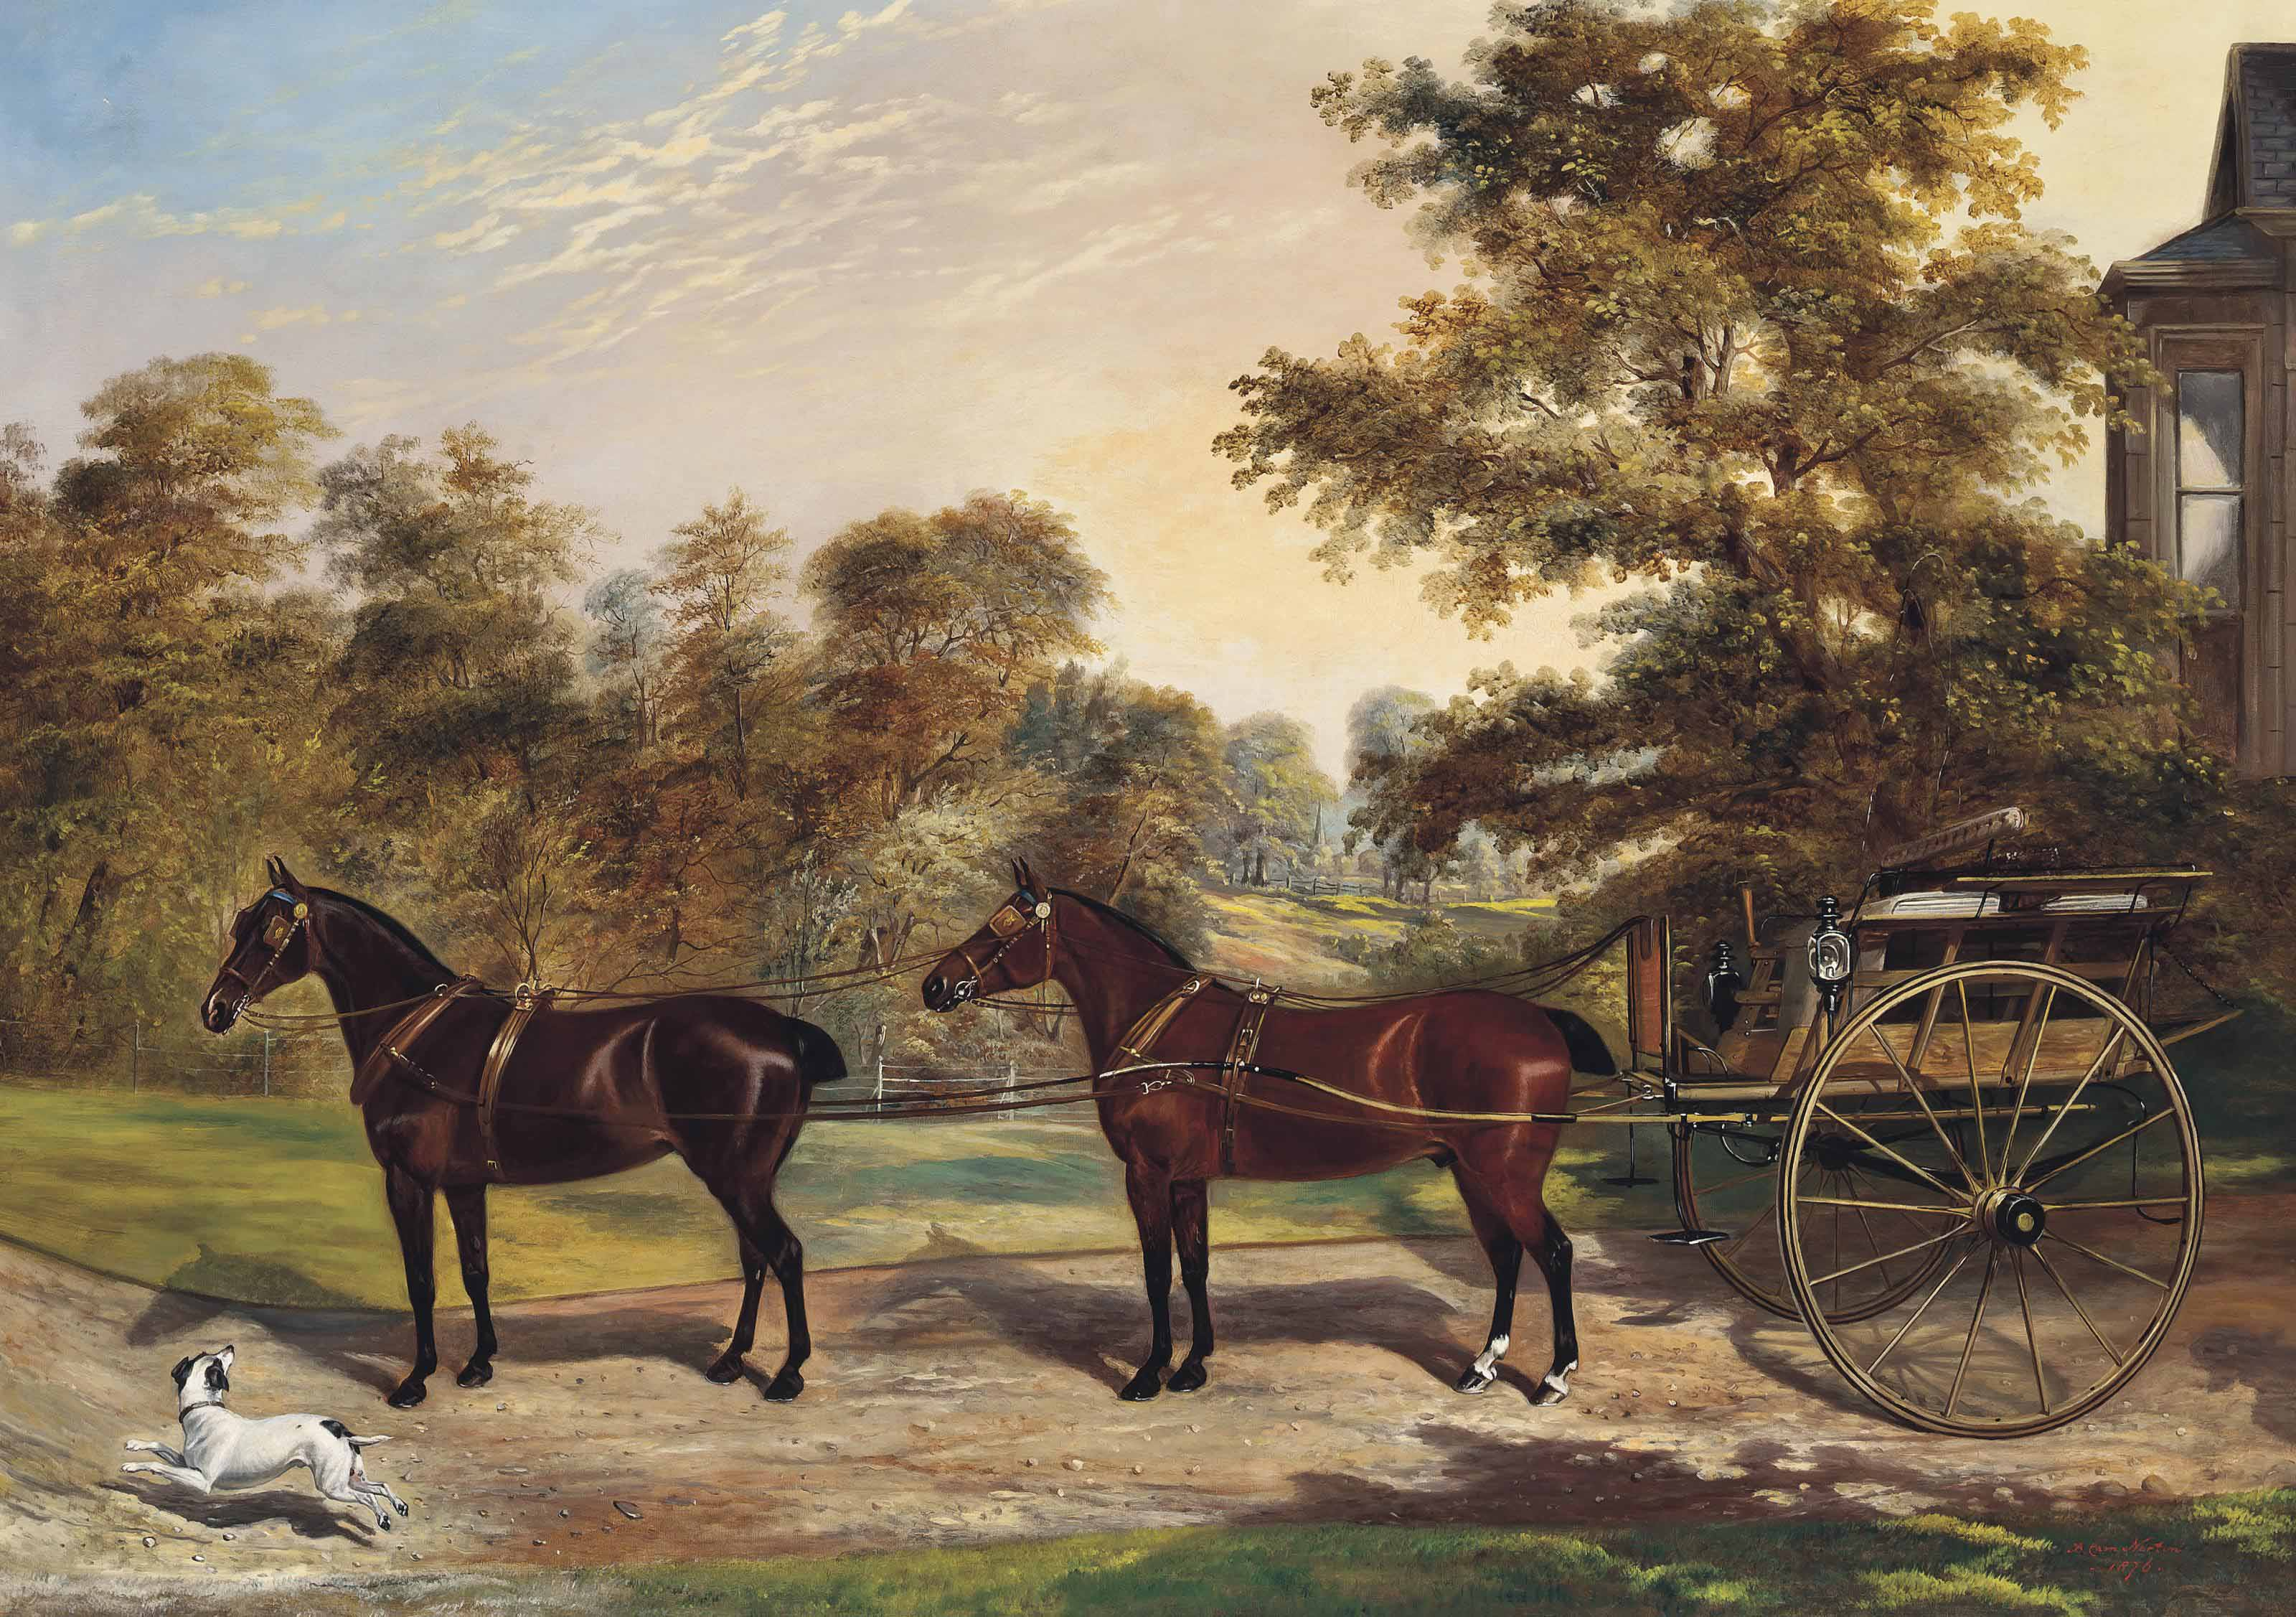 Carriage horses harnessed in tandem